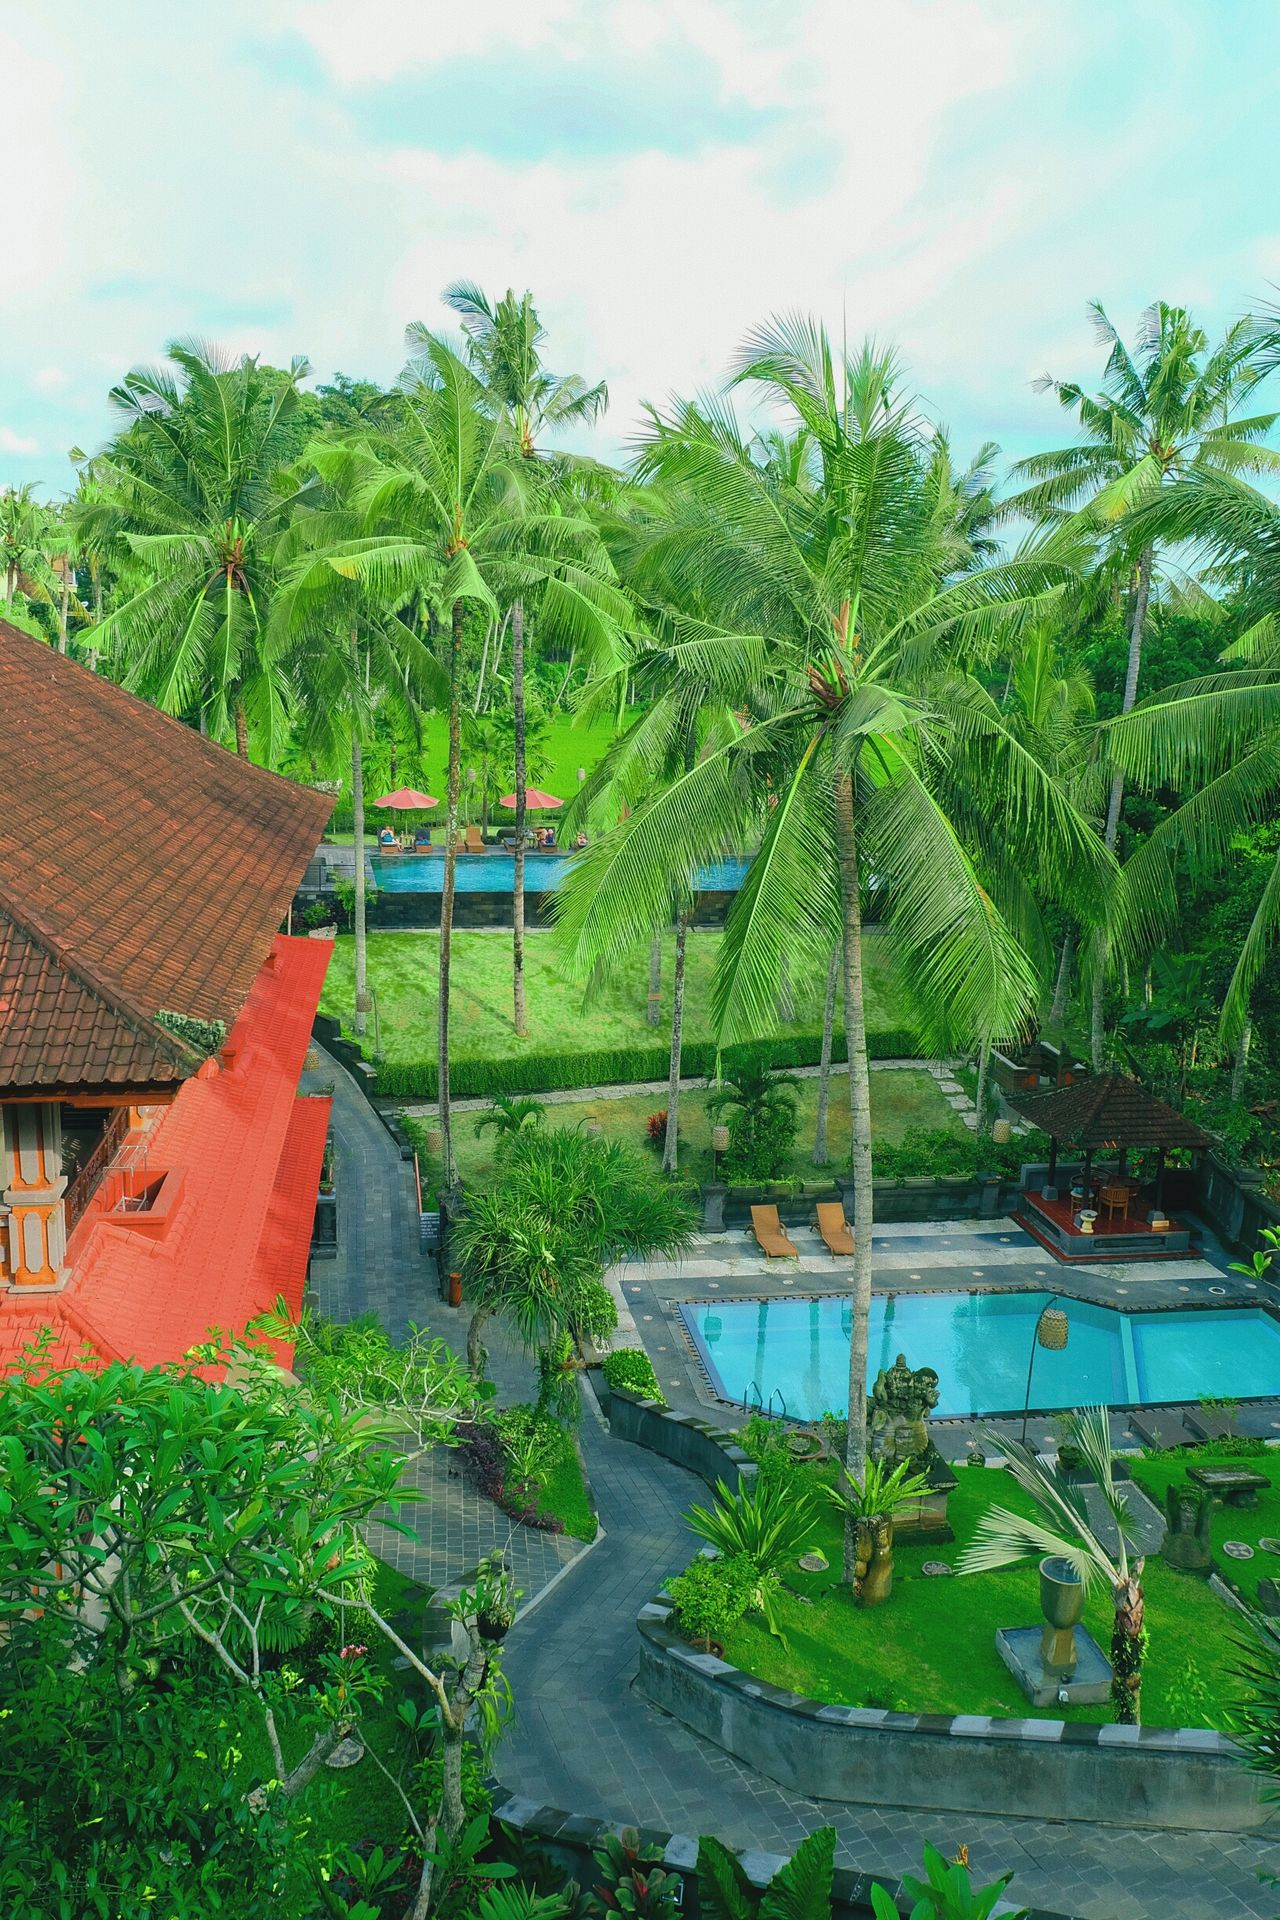 The Artini Resort, Ubud Hotel Holidays Holiday Holiday - Event Outdoors Green Color Swimming Pool Beauty In Nature Tree Day Garden Photography Hotel View Hotels And Resorts HotelsandResorts Ubud, Bali